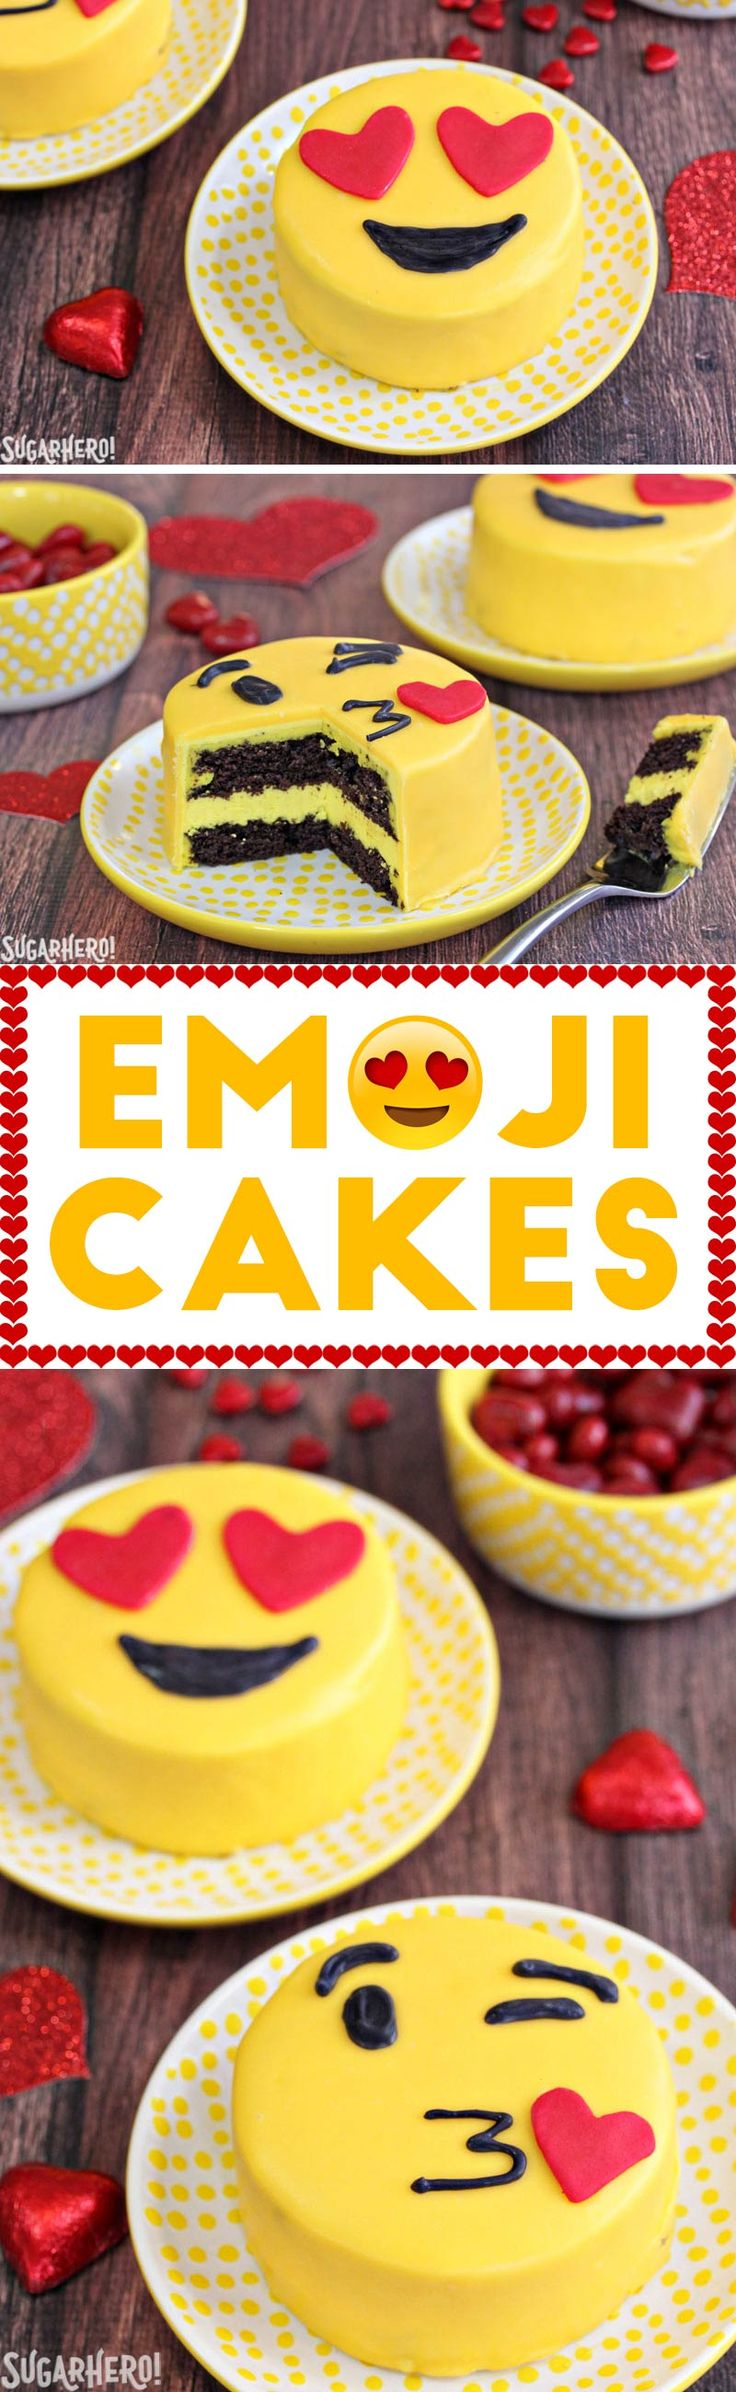 Emoji Cakes - mini chocolate cakes with emoji designs! | From SugarHero.com